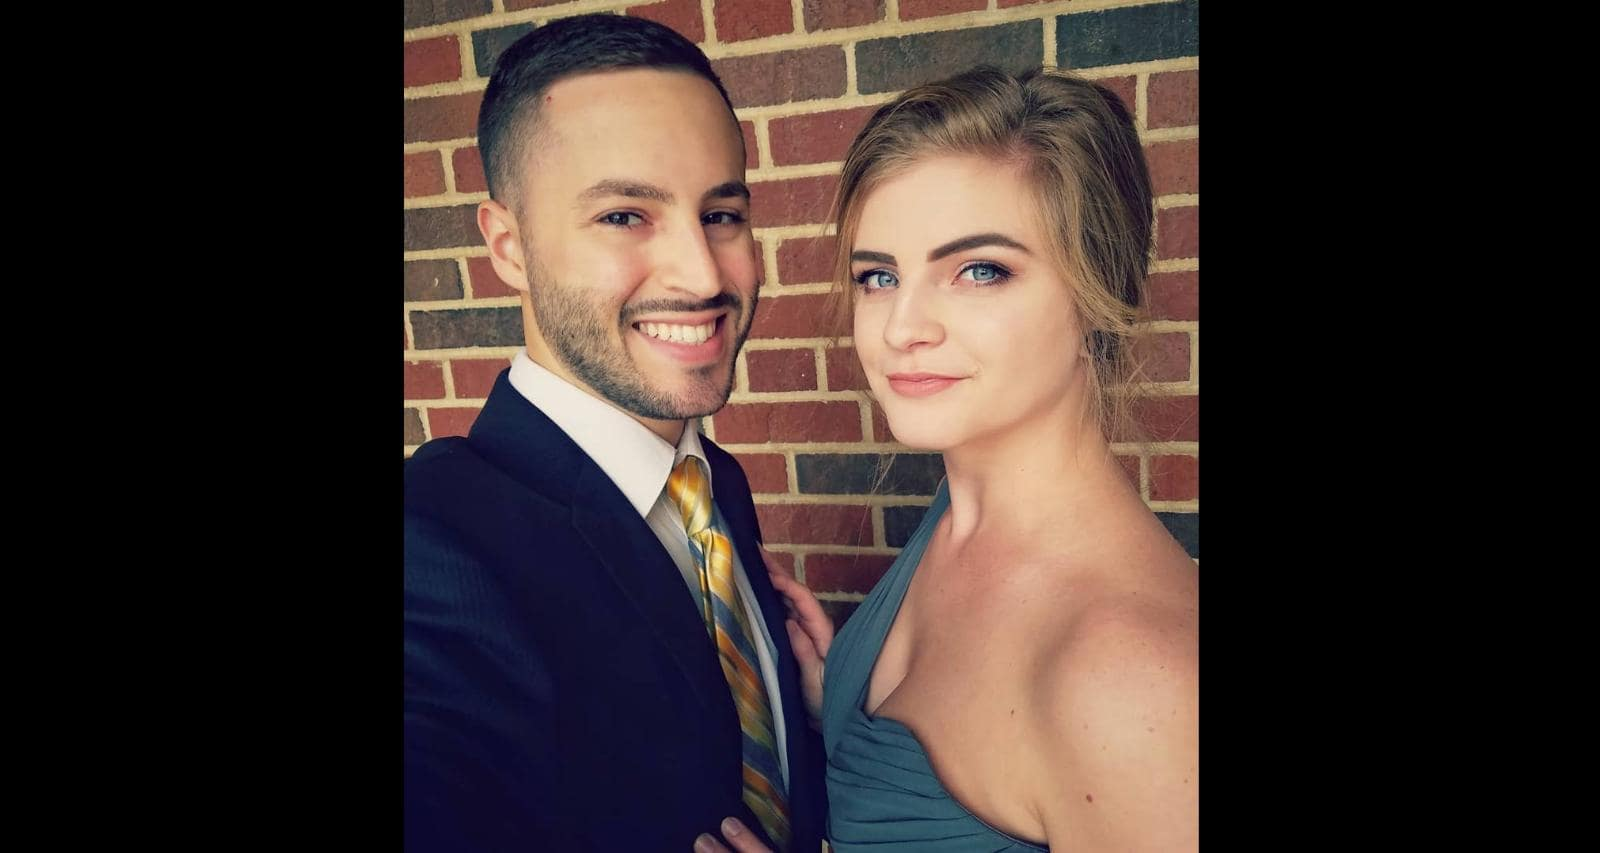 Justin Moldow Wiki, Education, Facts About Kaitlin Bennett's Husband